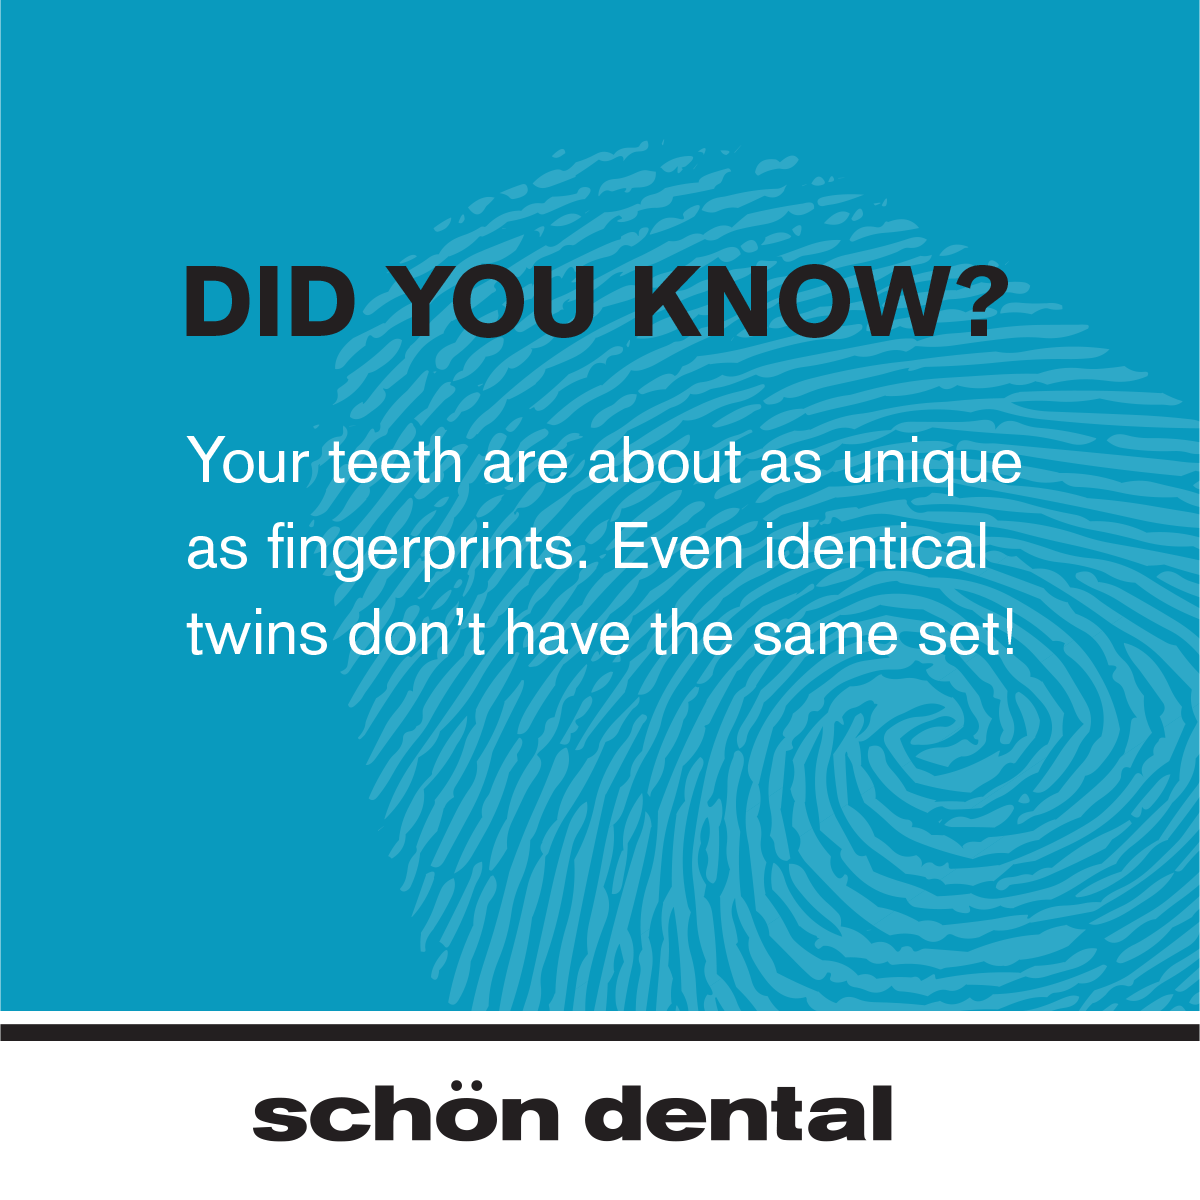 Did You Know That Just Like Fingerprints Your Teeth Are As